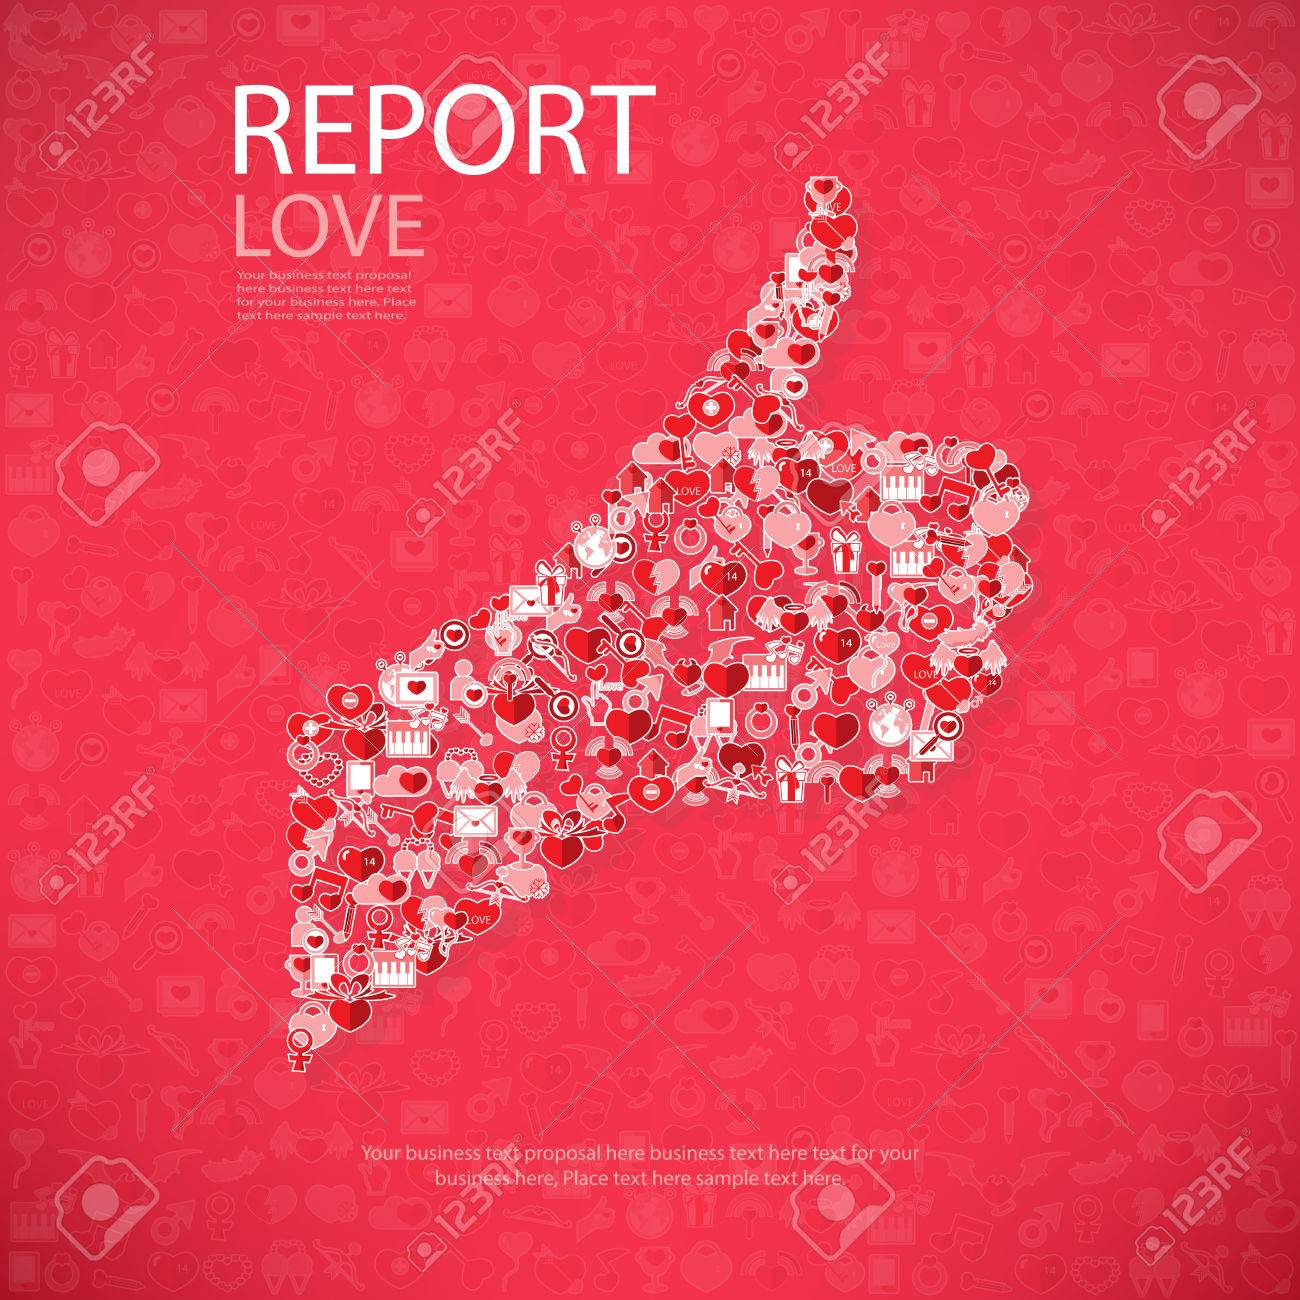 Report template design like symbol icon valentines day idea report template design like symbol icon valentines day idea illustration stock vector 35471887 buycottarizona Choice Image